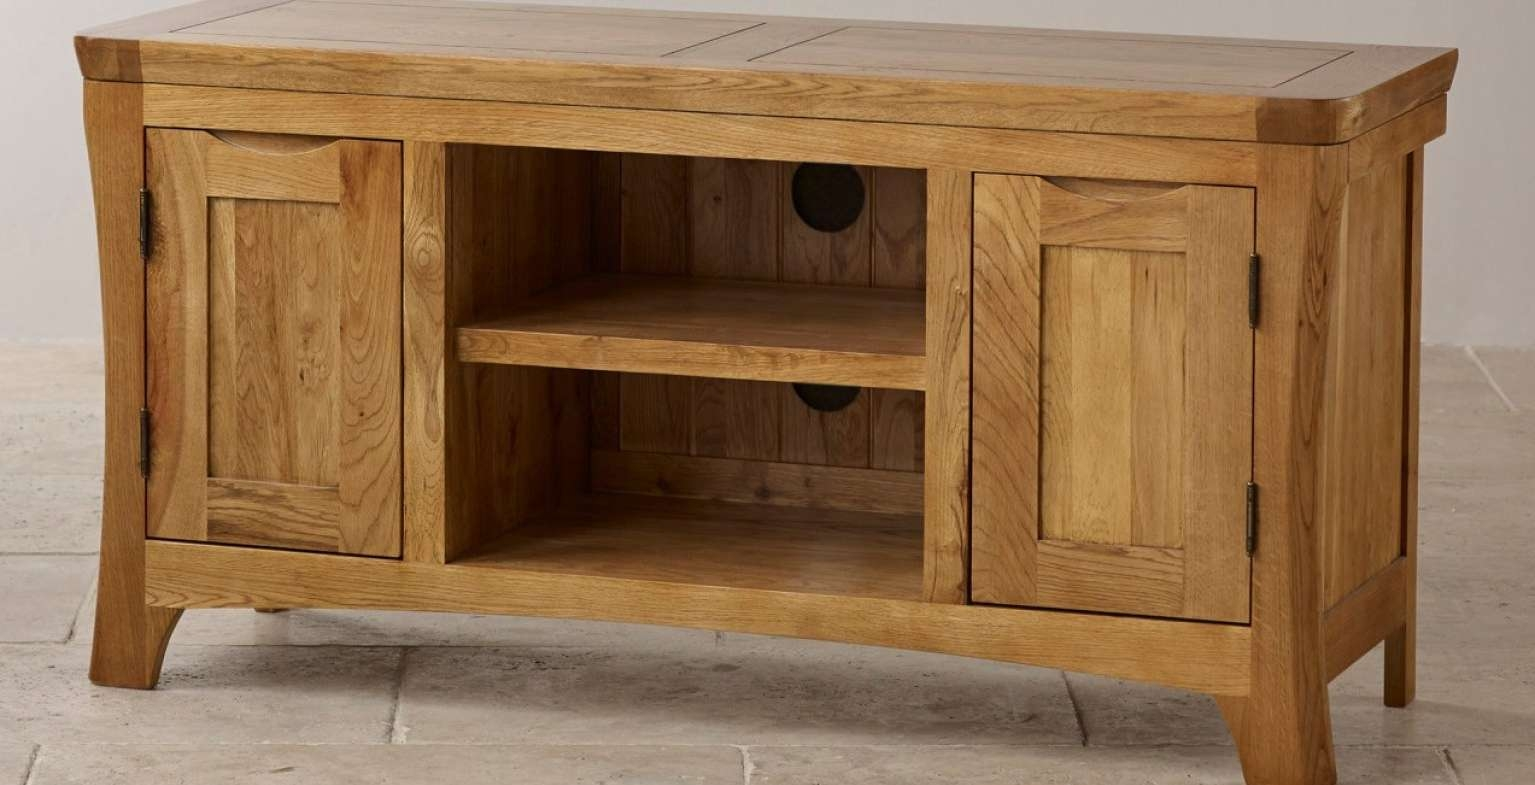 Tv : 41 Stunning 40 Inch Tv Stand Wood Photos Concept Stunning For Real Wood Corner Tv Stands (View 11 of 15)